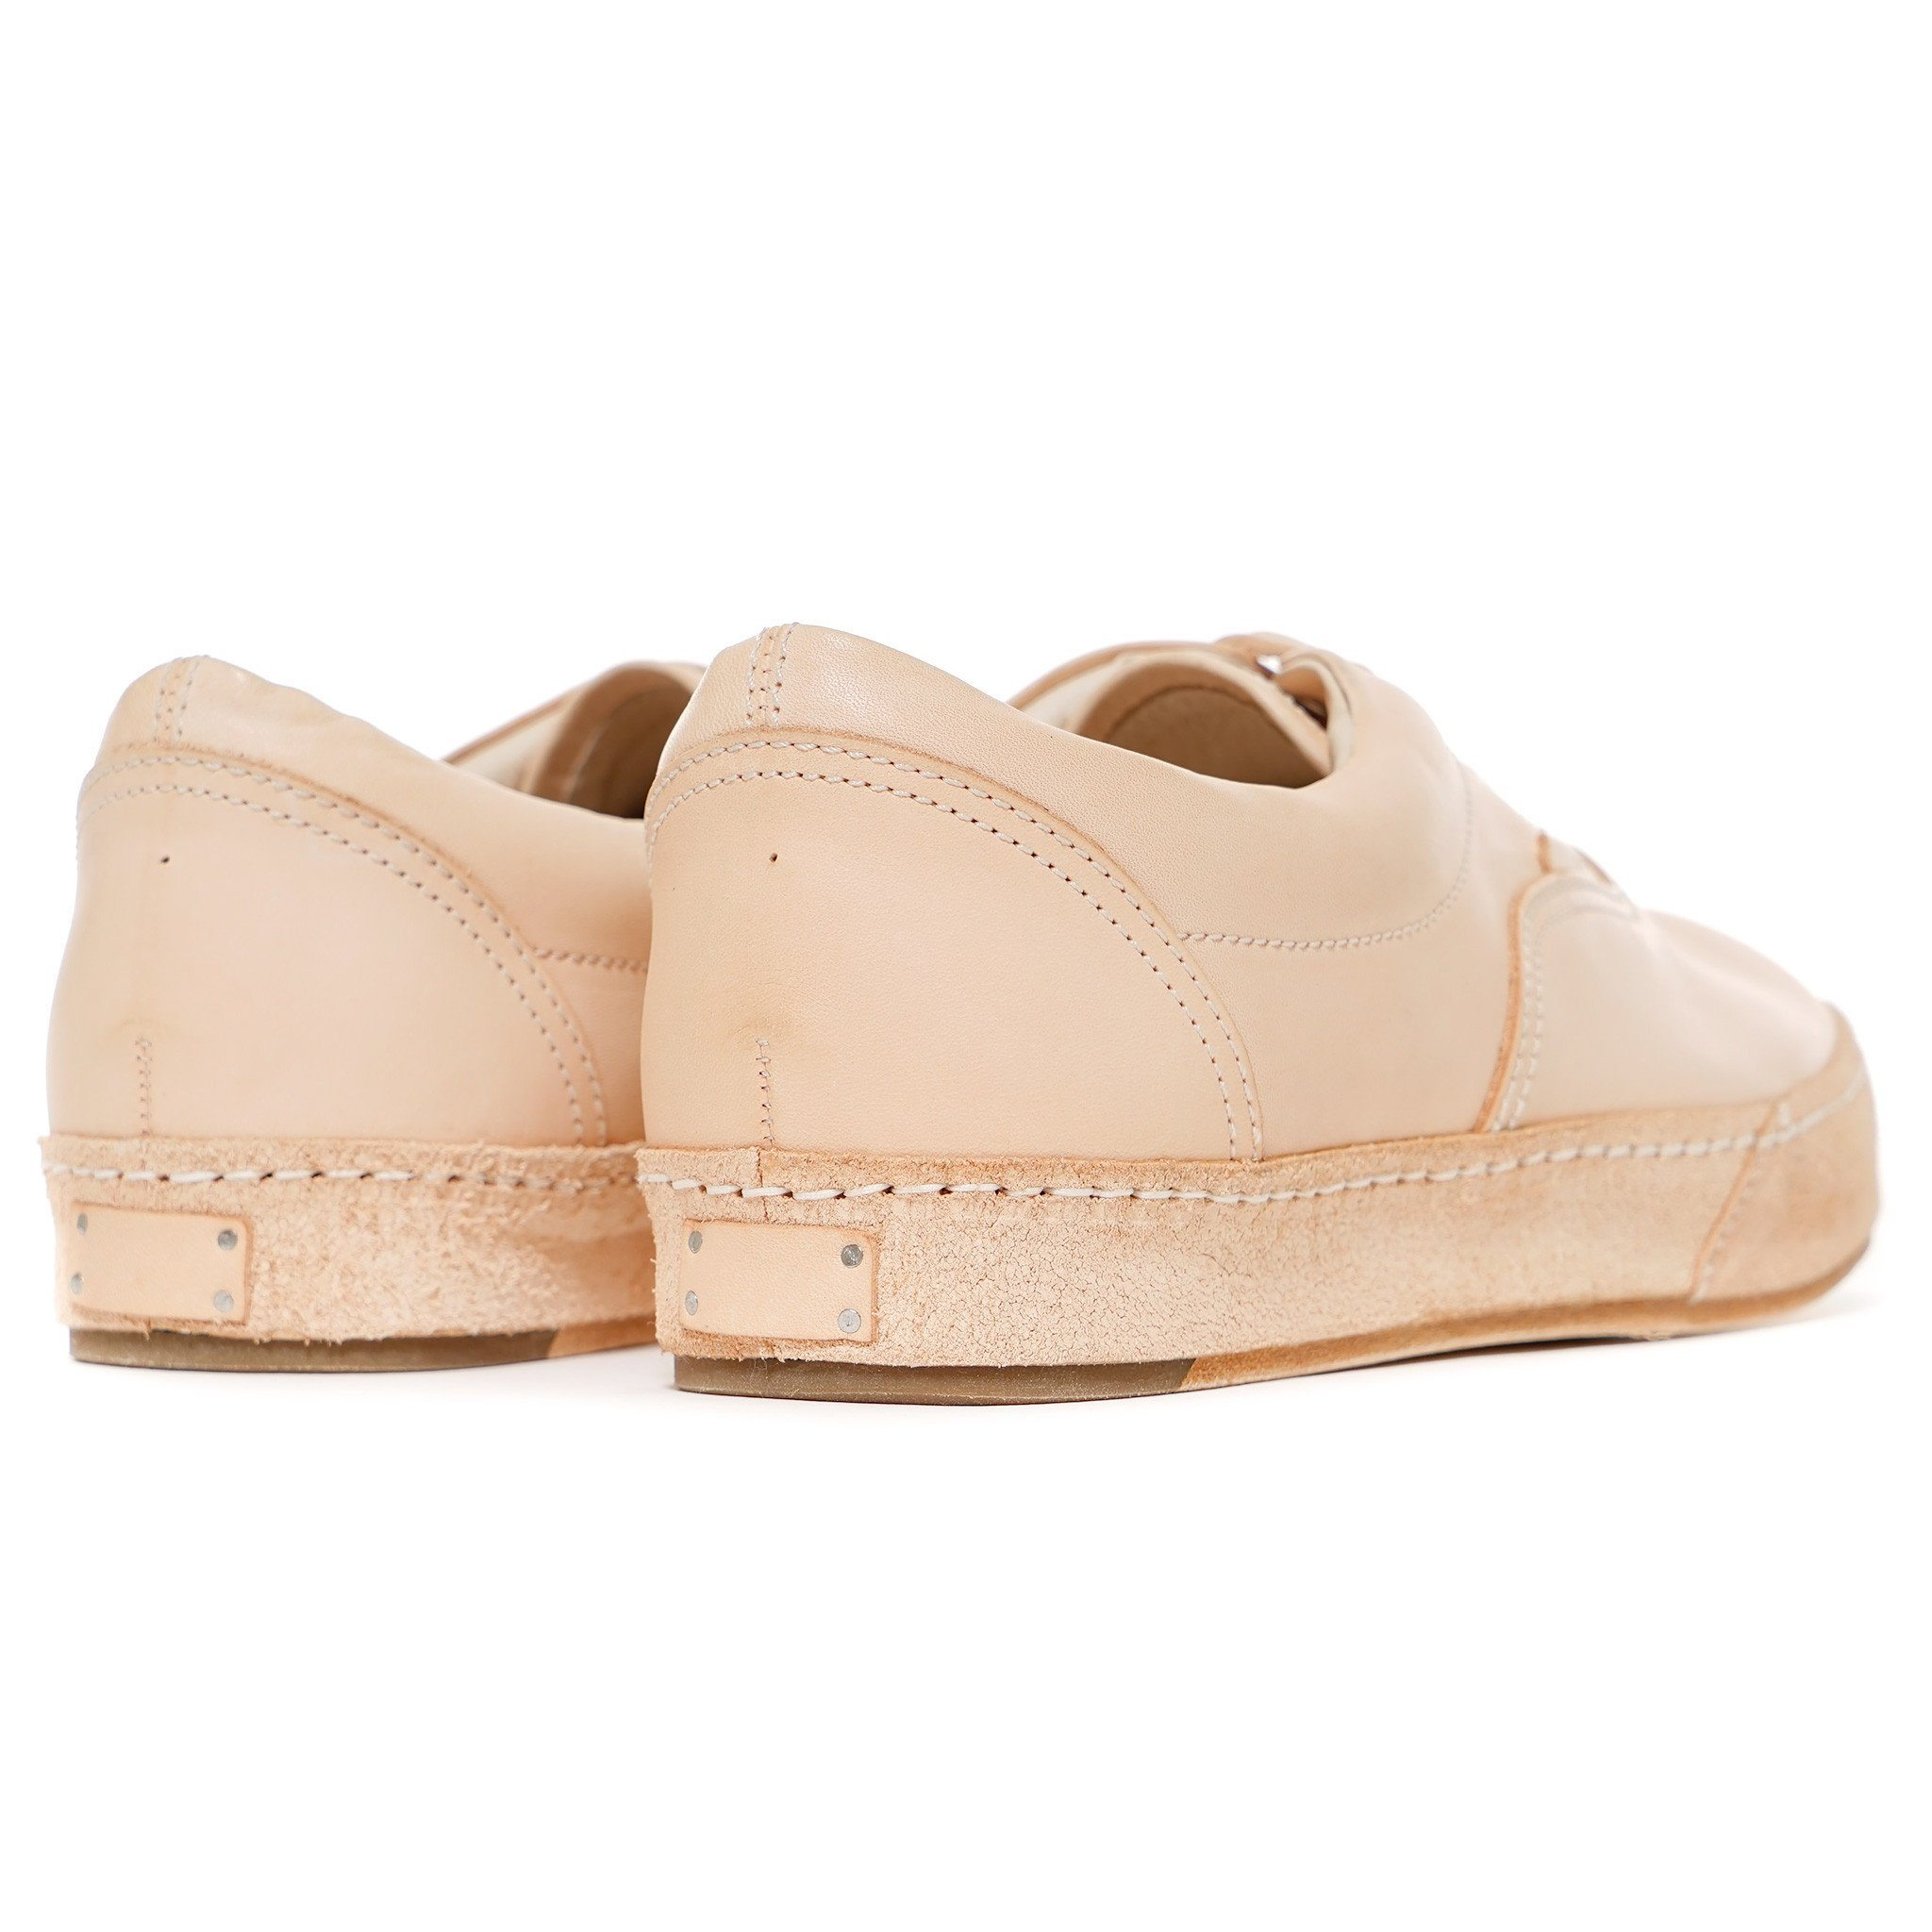 MIP Authentic 04 Sneakers HENDER SCHEME bgwJWadwE